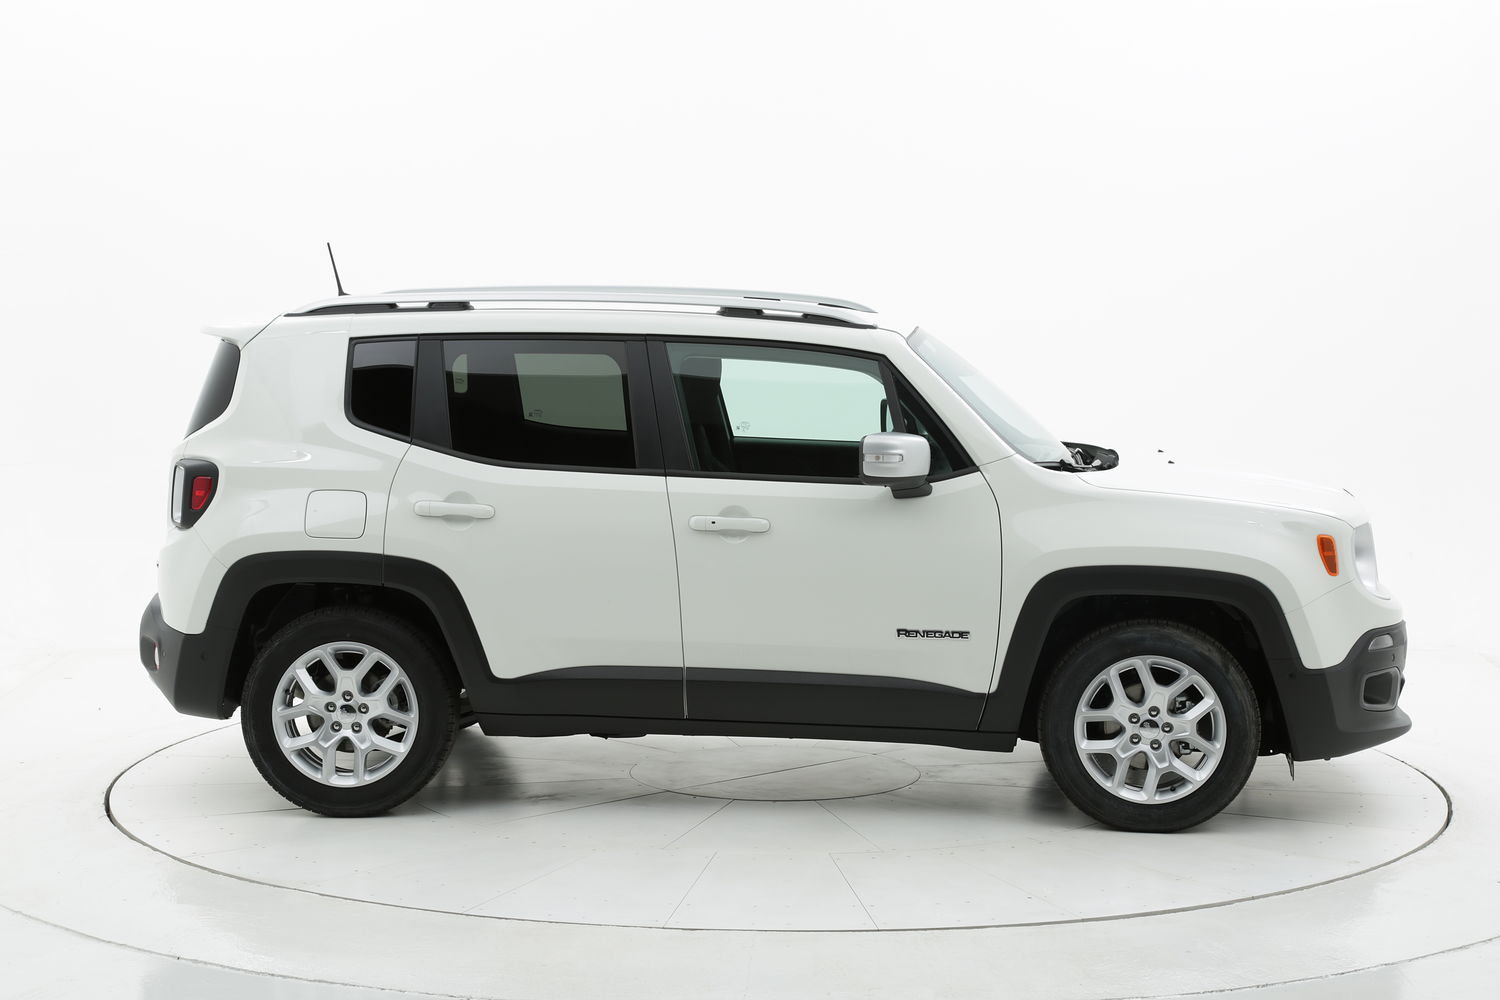 Jeep Renegade Limited MY18 km 0 diesel bianca